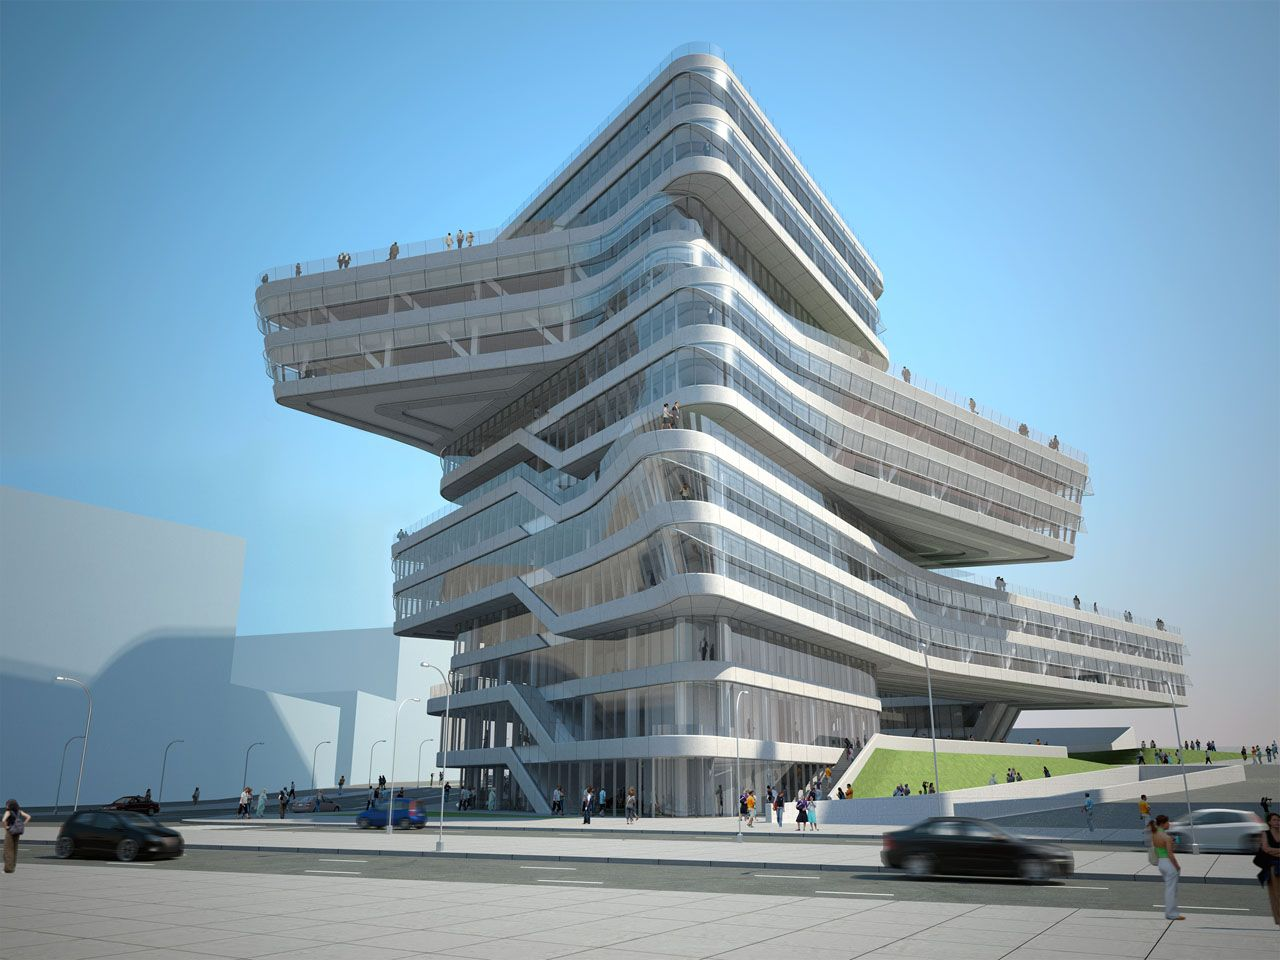 New Building Concepts By Zaha Hadid #2 | Buildings | Pinterest ...